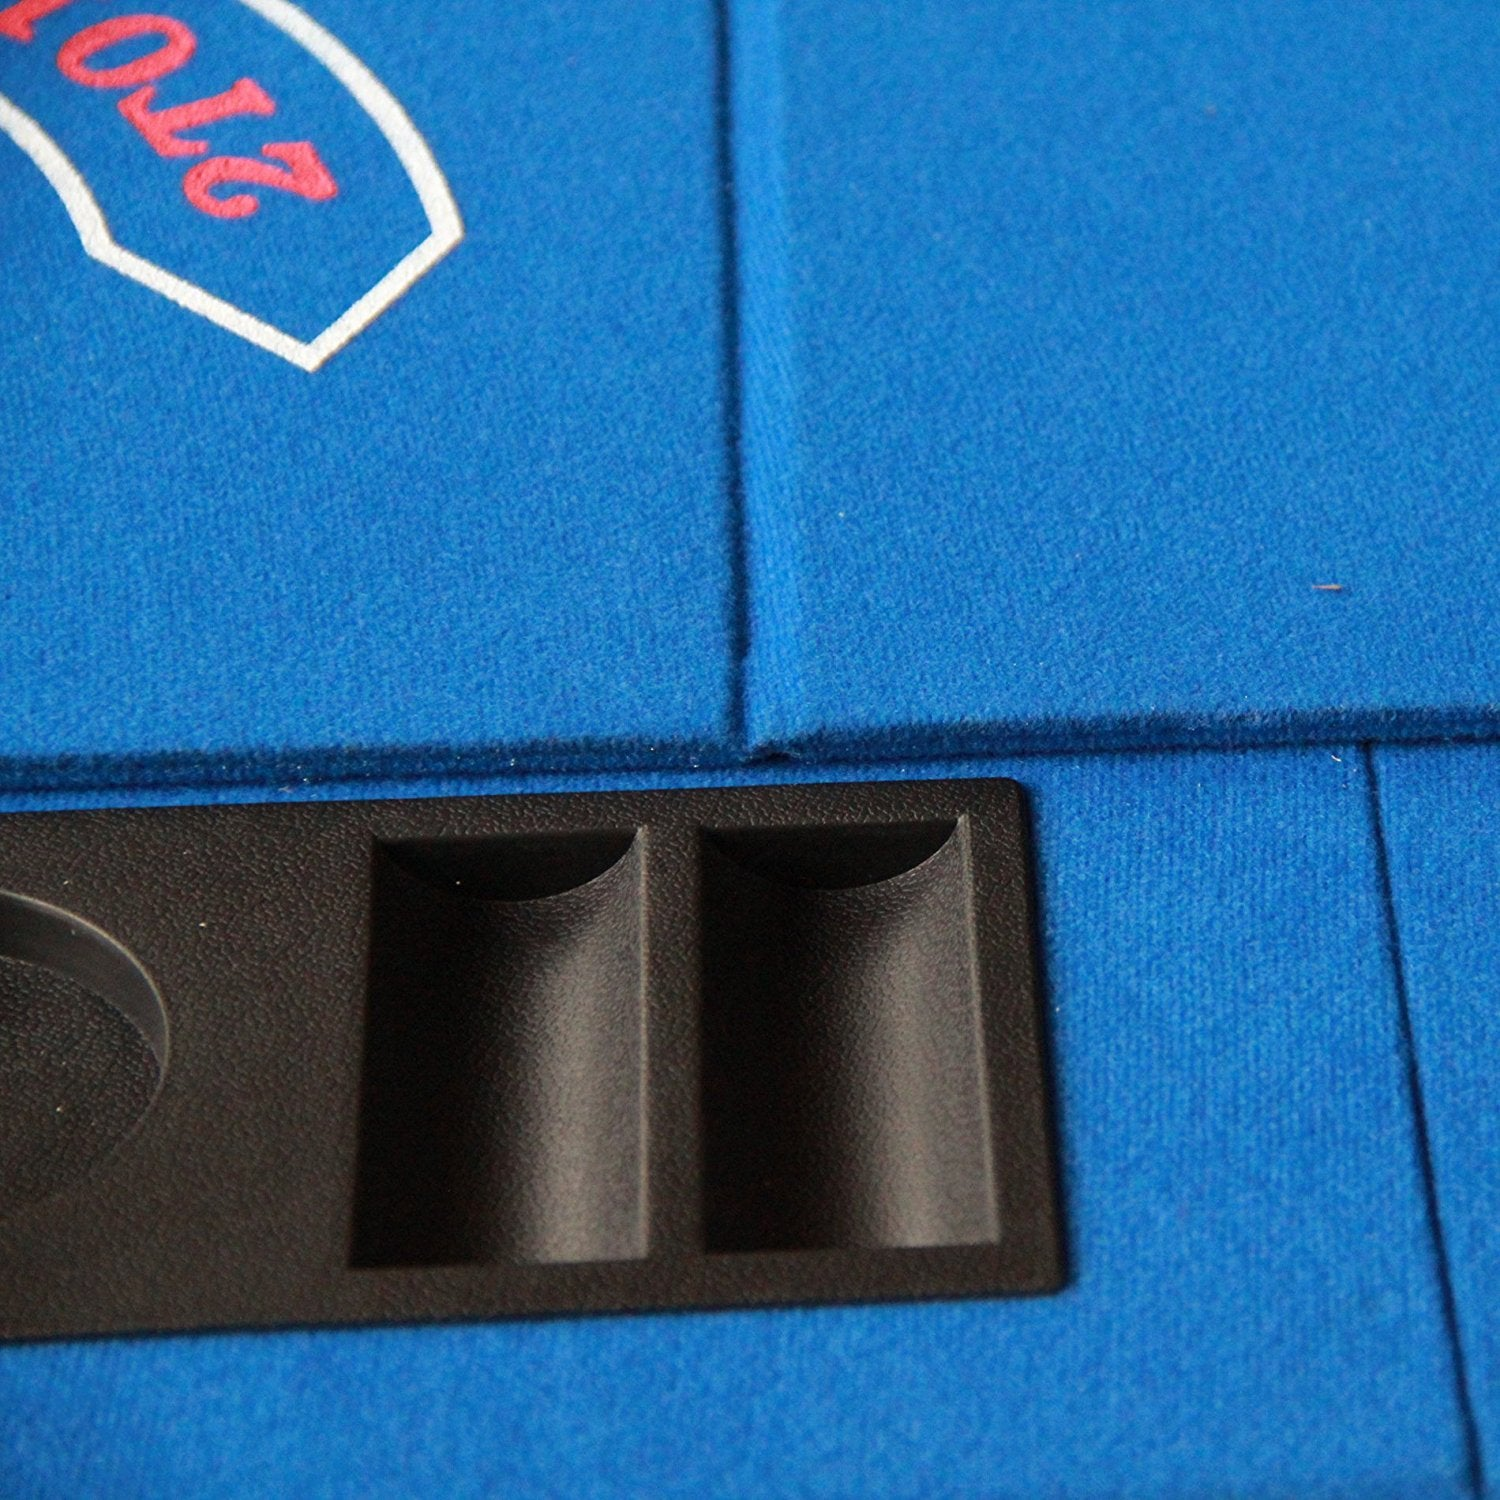 3-1 Folding Poker & Casino Table Top Blackjack & Craps